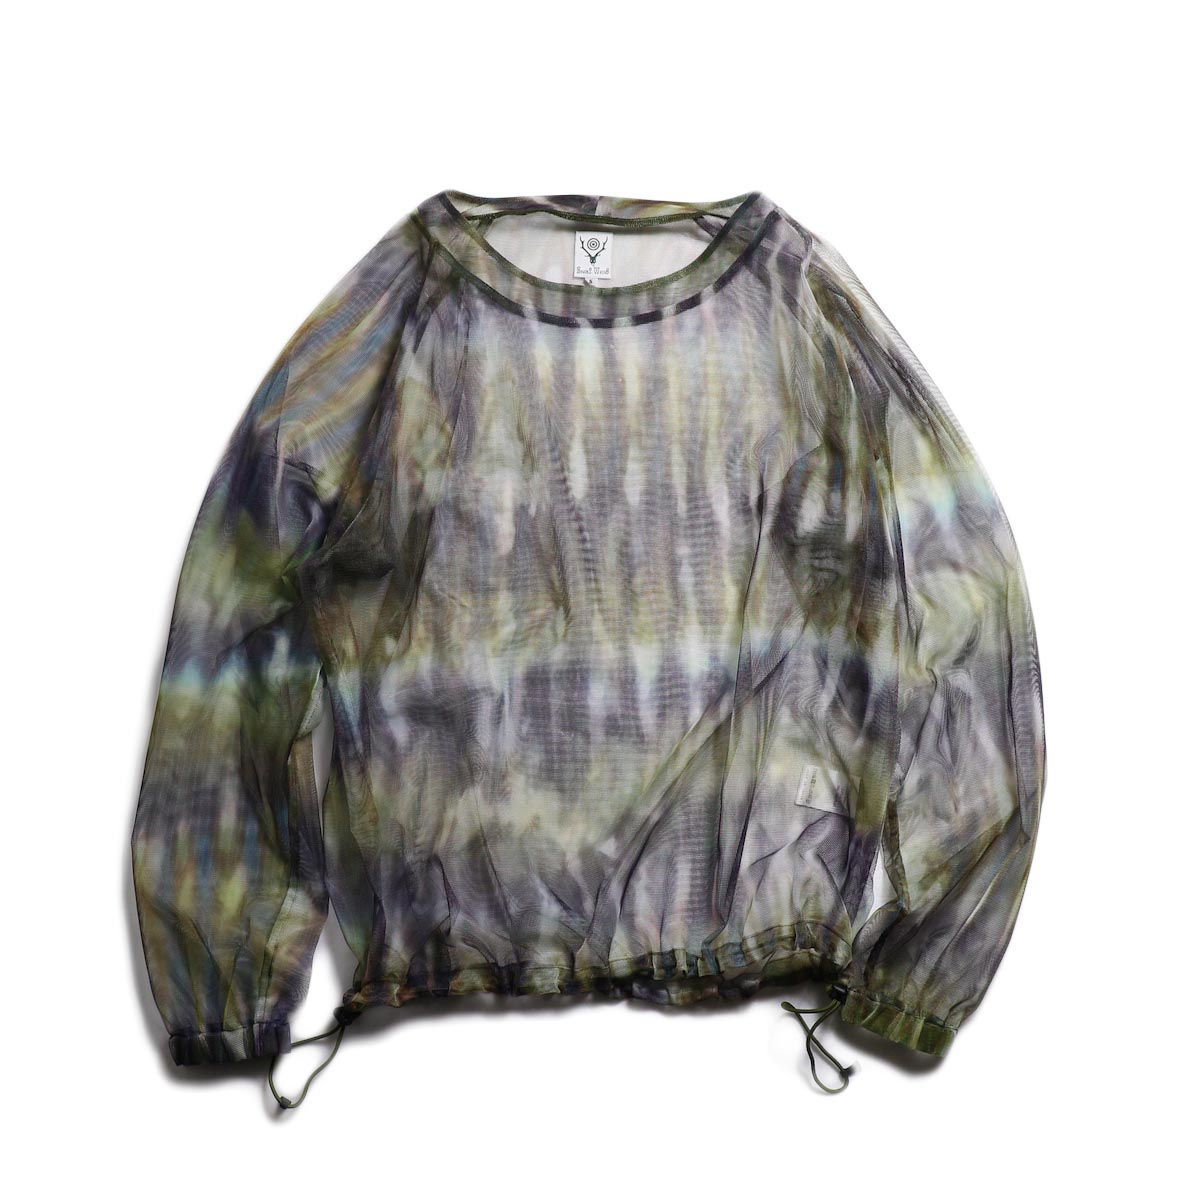 SOUTH2 WEST8 / Bush Shirt -Mesh Print (Tie Dye)